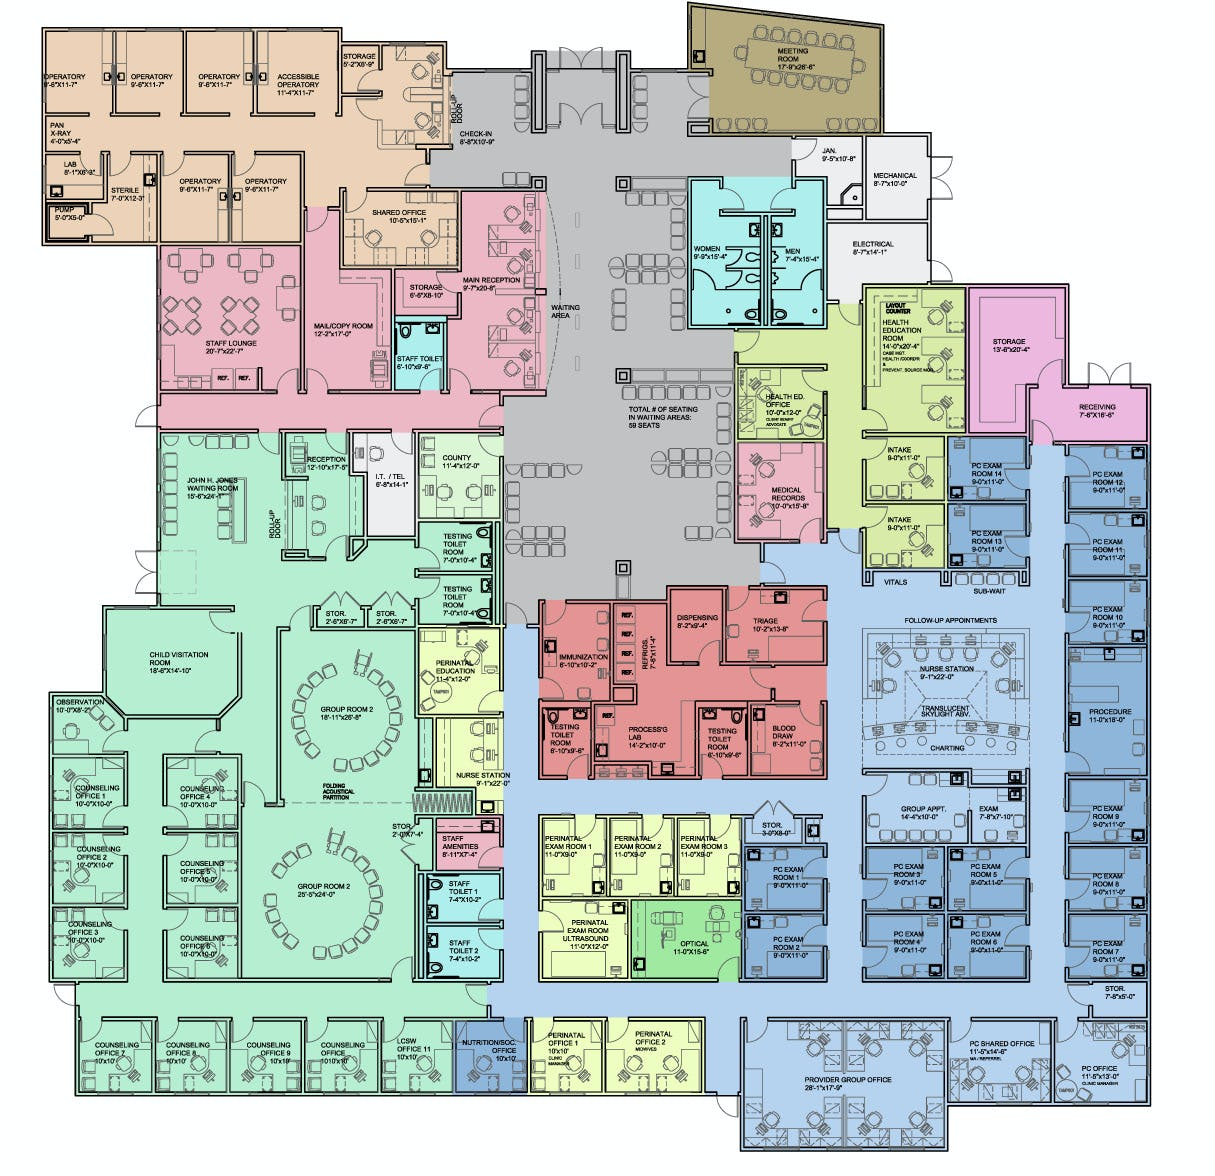 Communicare floorplan